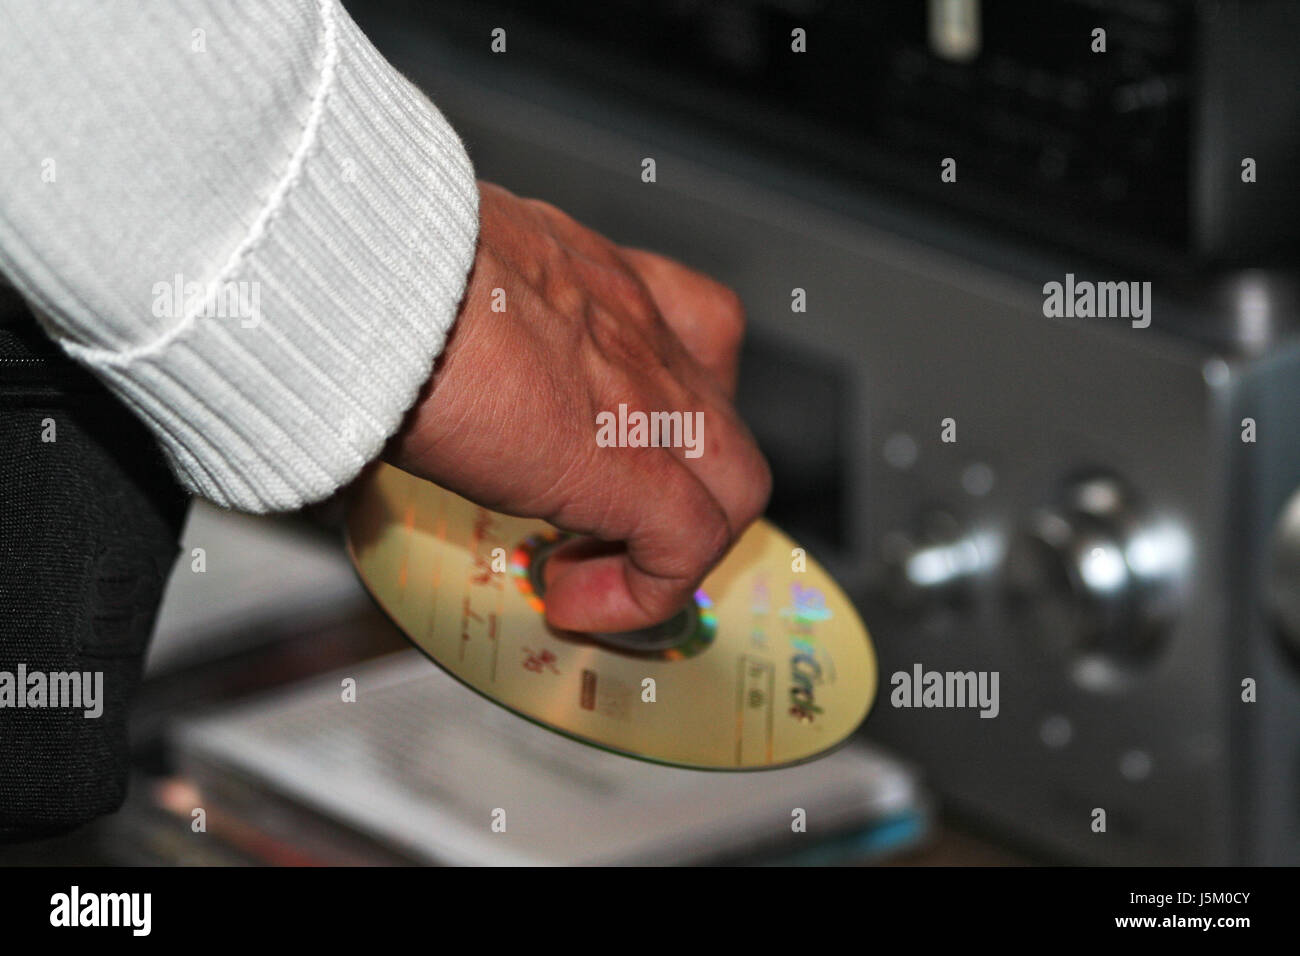 hand finger music listen disc party celebration sweater hold serve grasp CD Stock Photo